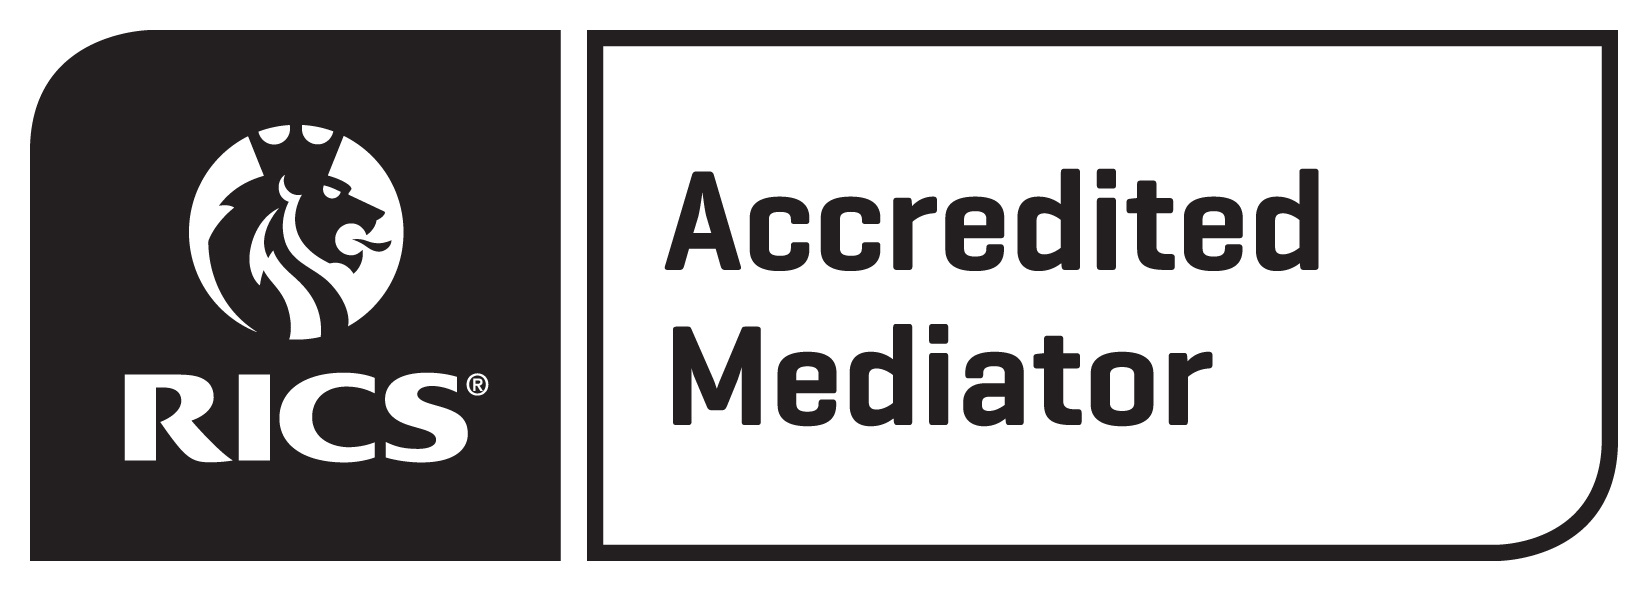 rics_accredited_mediator_logo1709_1648